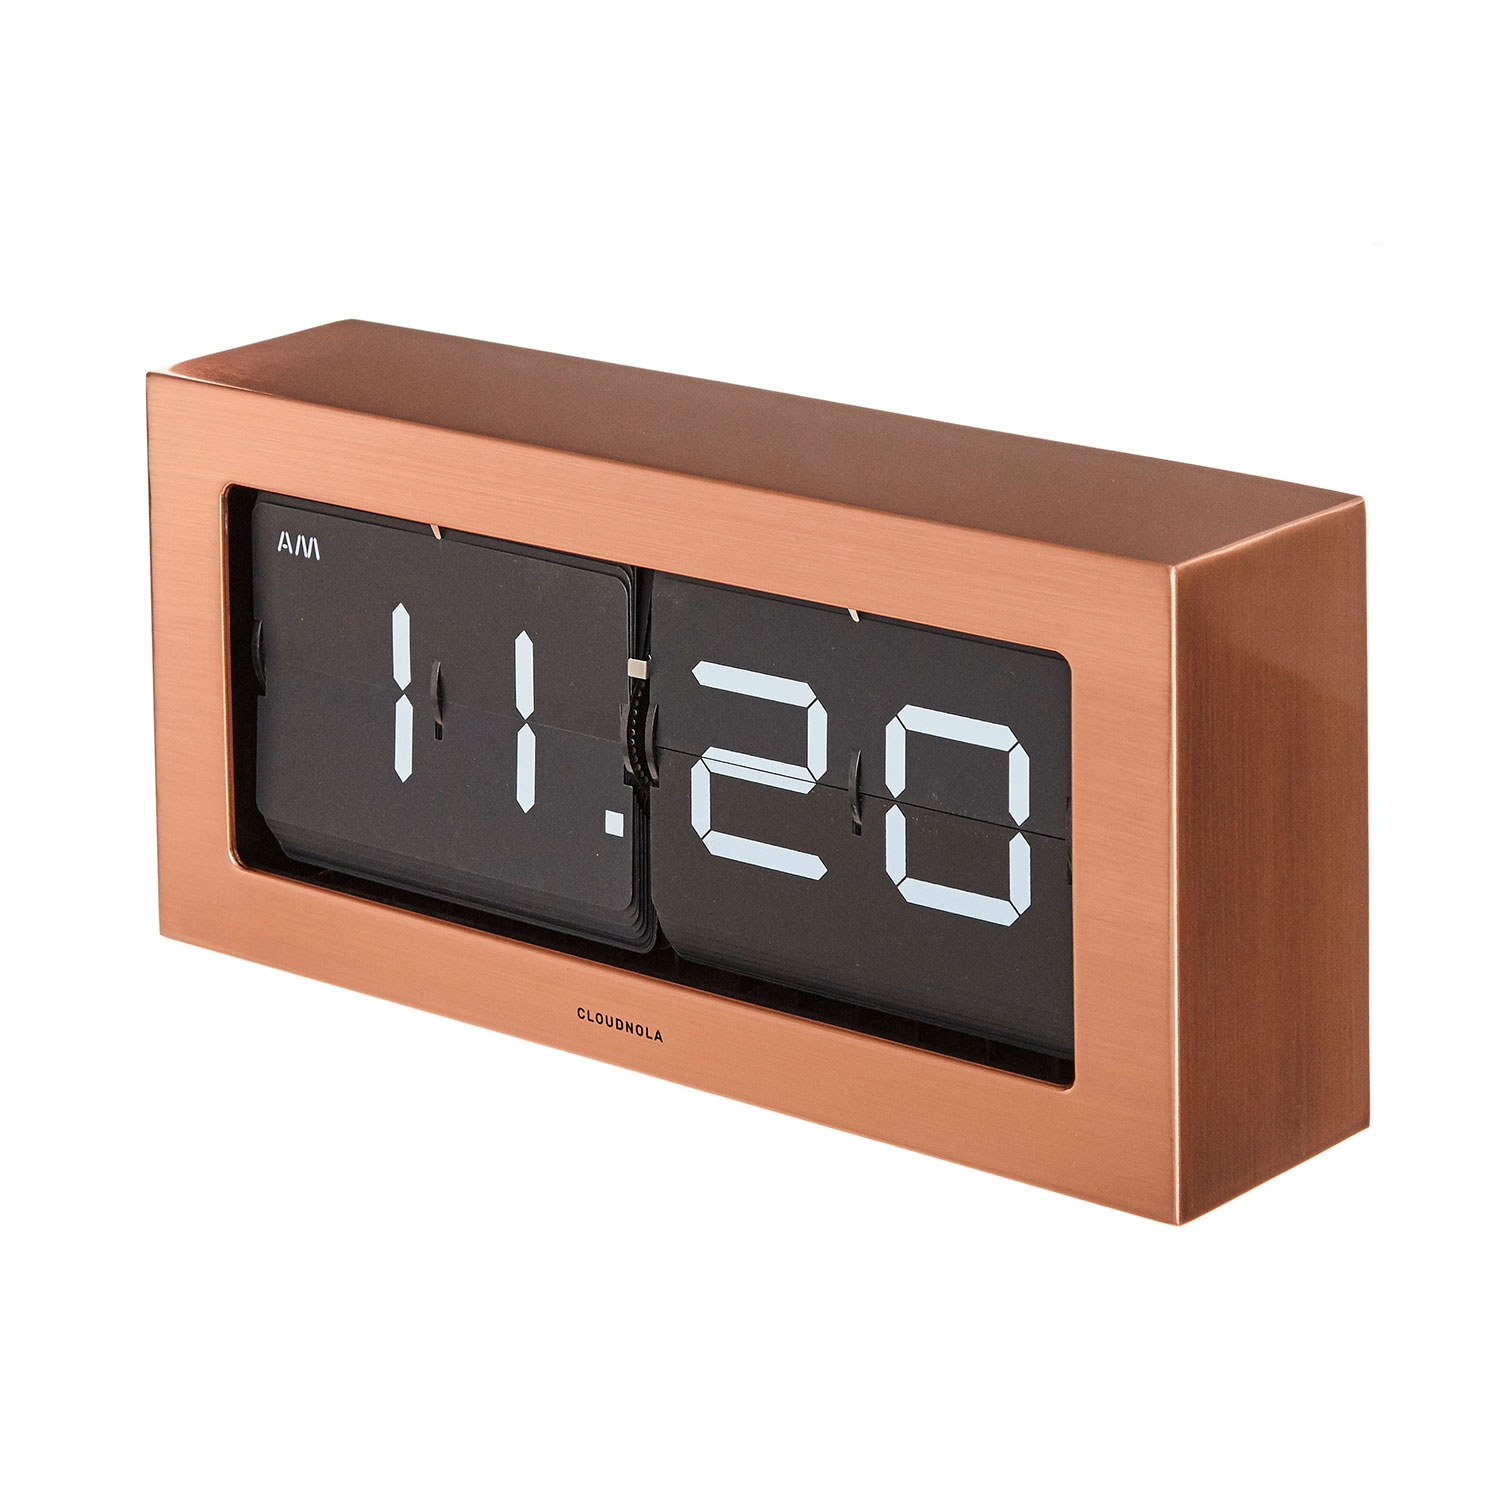 tisch oder wanduhr boss flip kupfer klappzahlenuhr flipclock accessoires uhren wecker. Black Bedroom Furniture Sets. Home Design Ideas